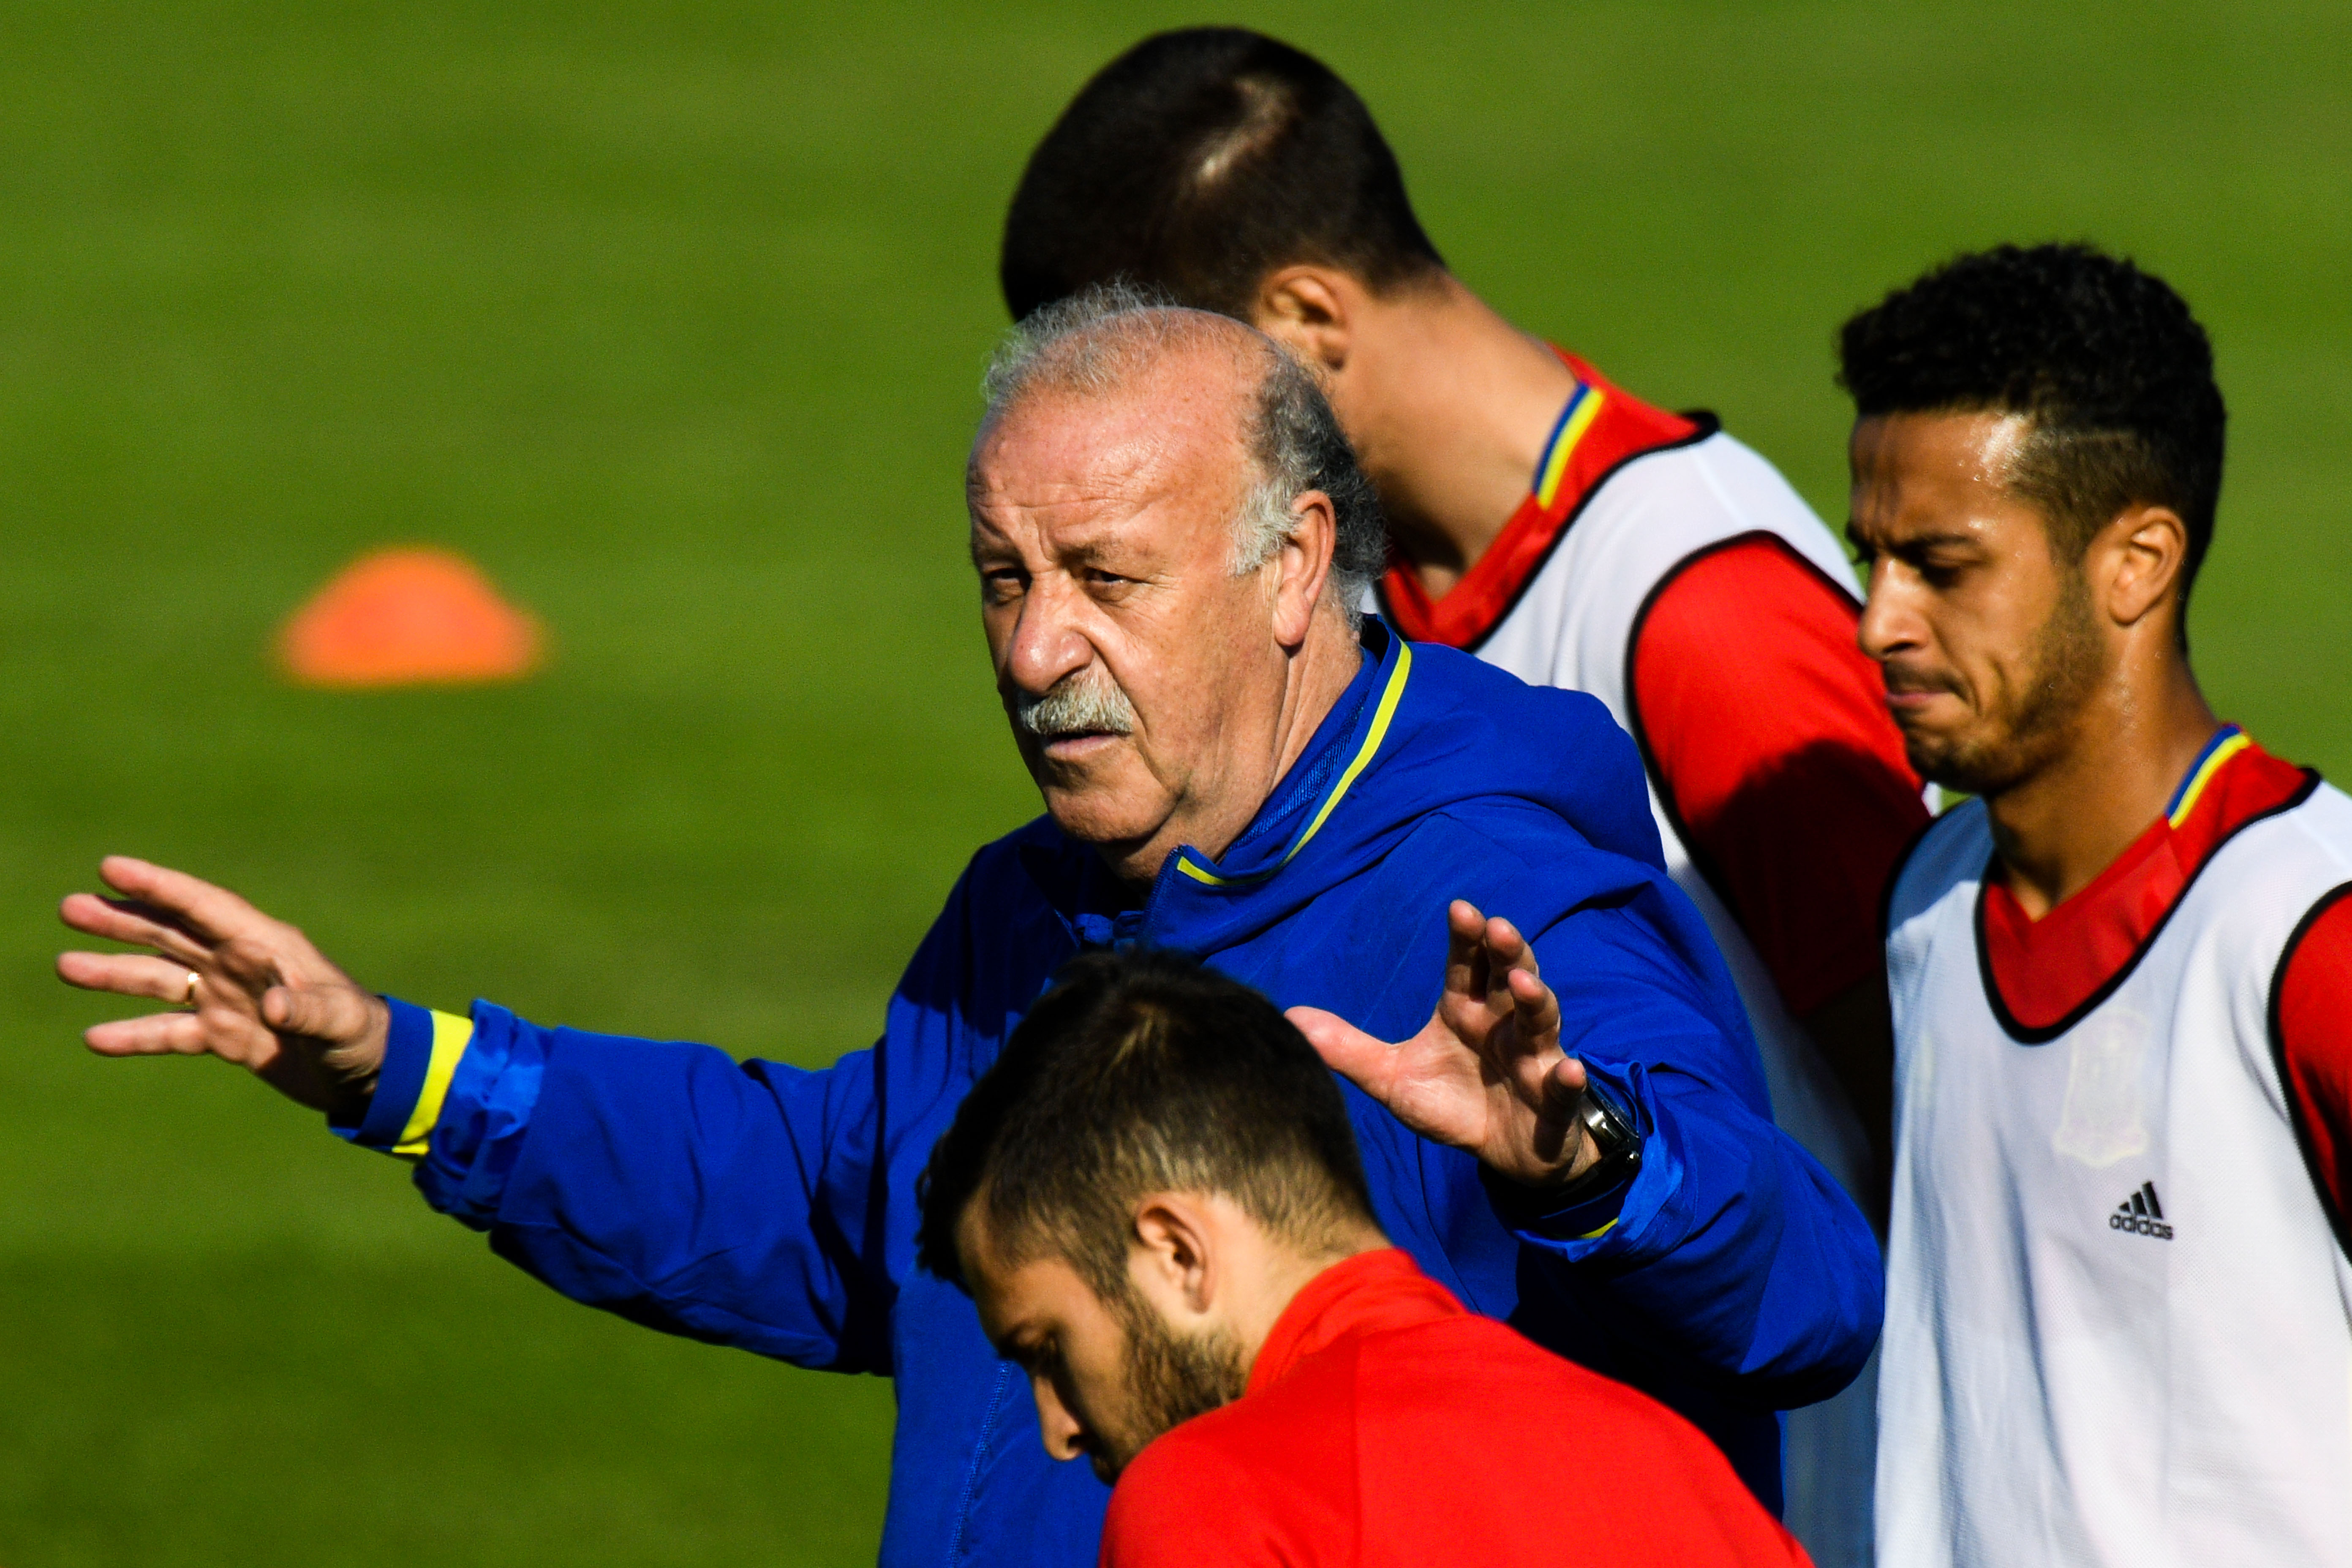 Del Bosque: Spain to play without fear